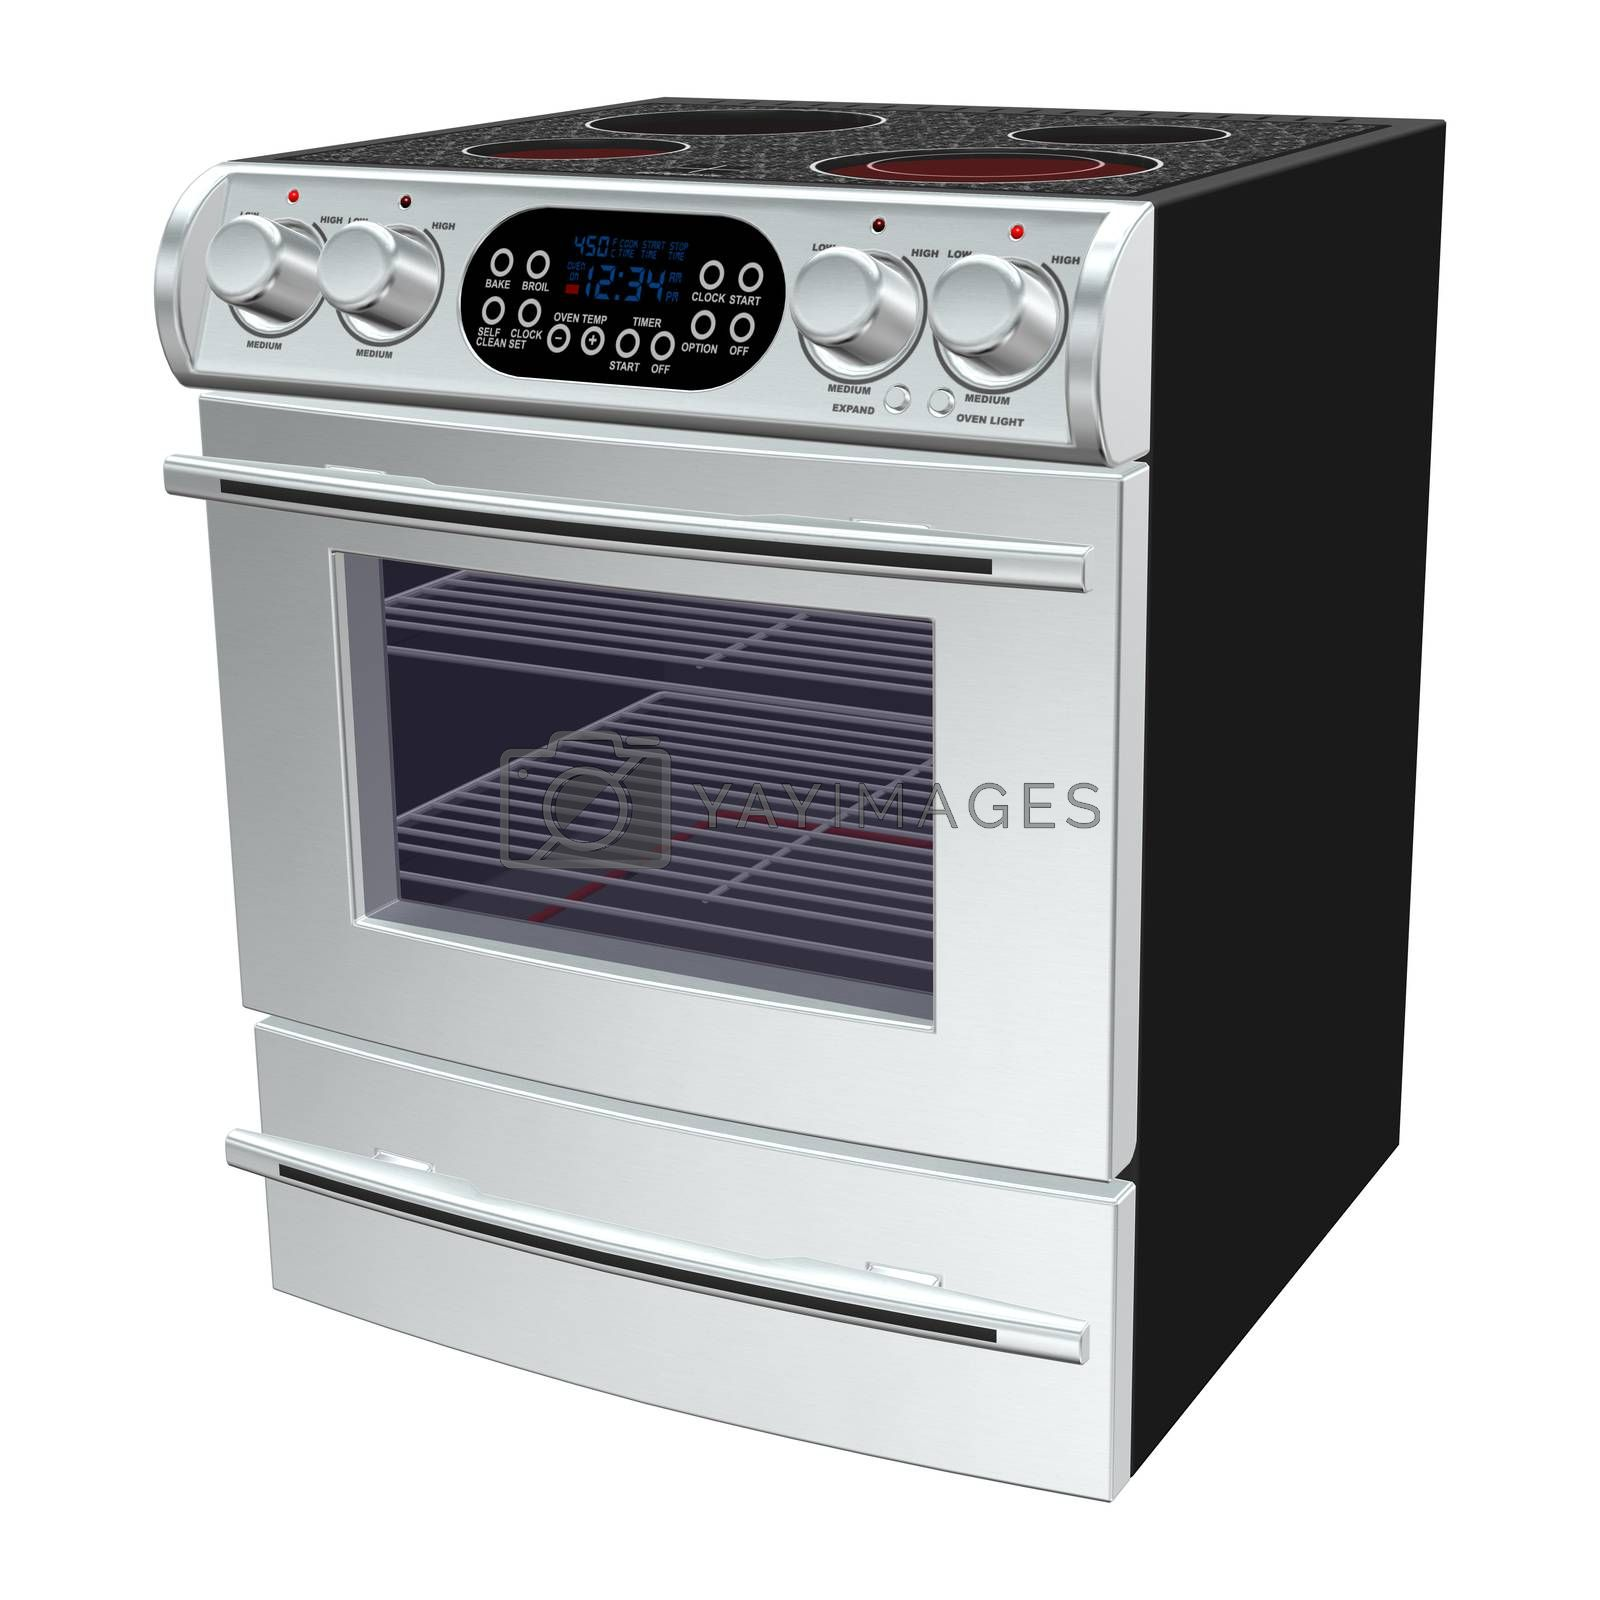 Royalty free image of Oven by Vac